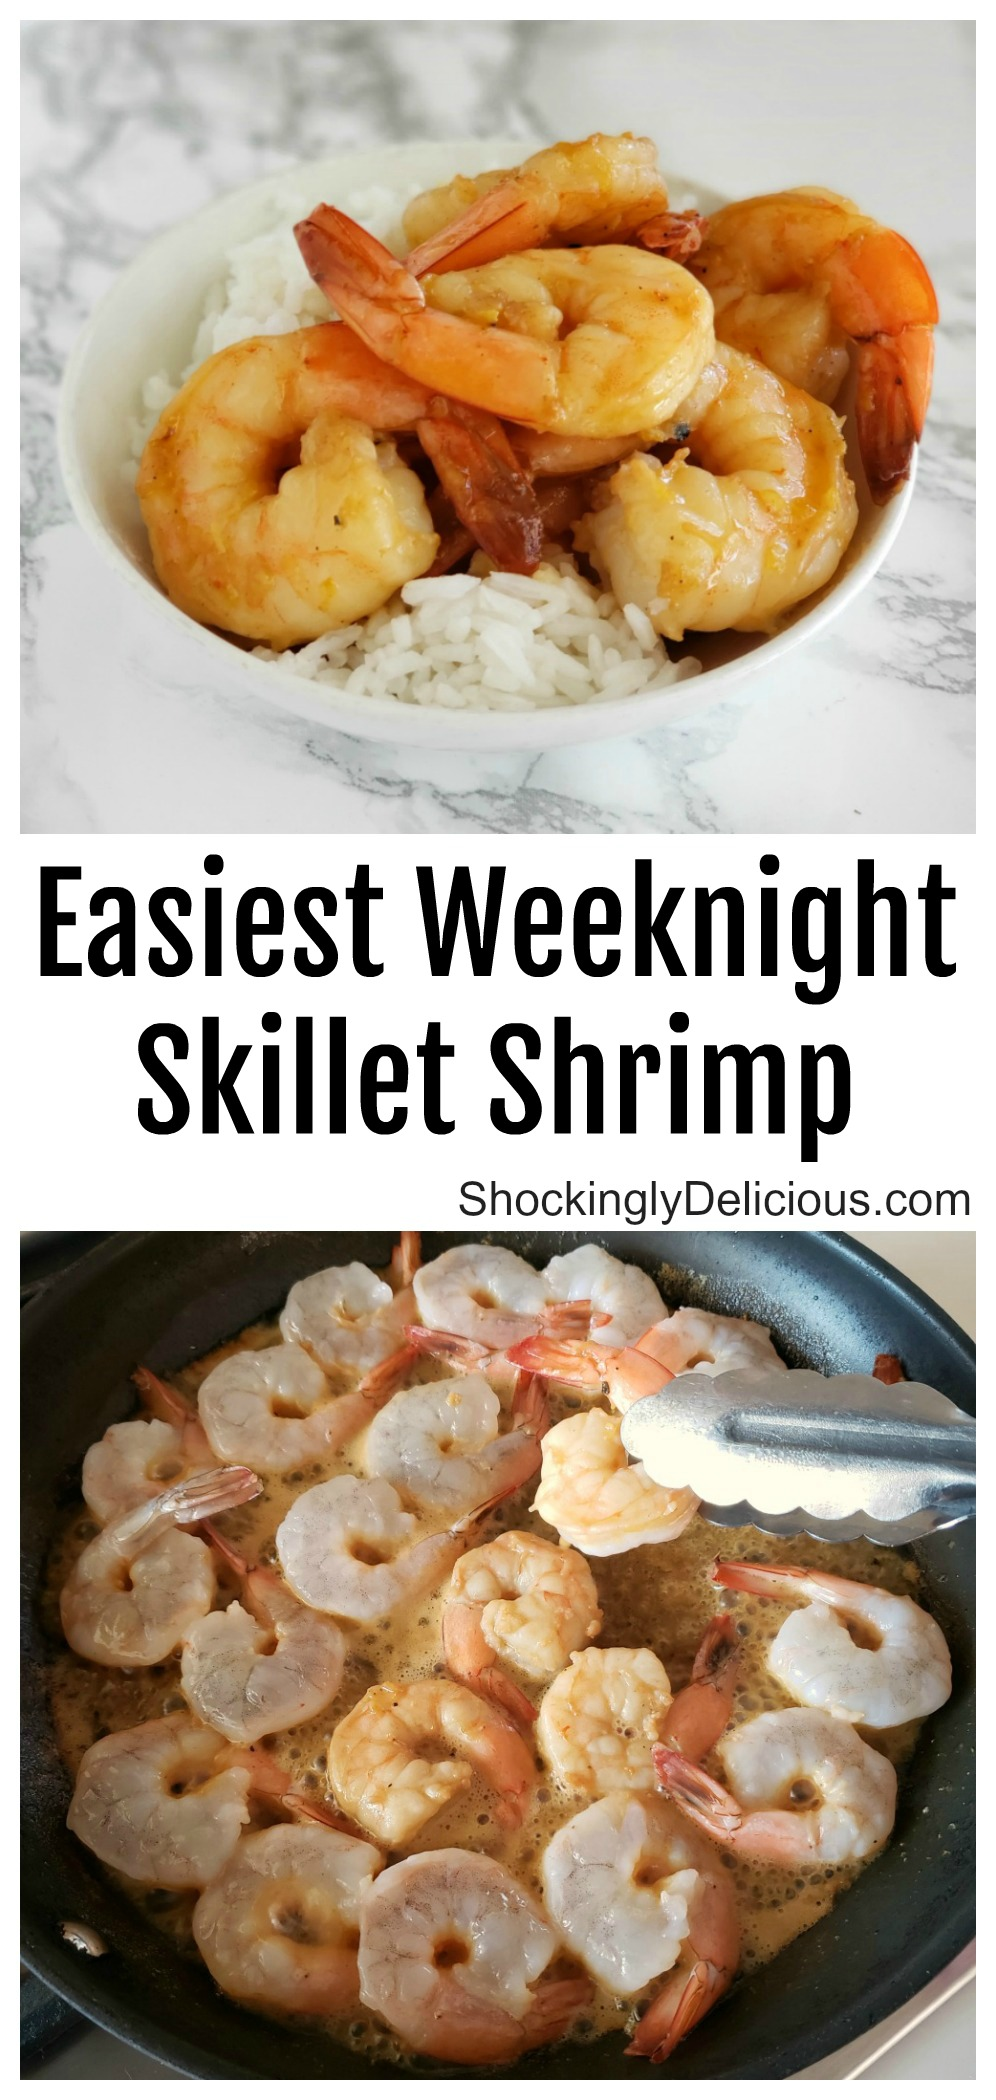 Easiest recipe Weeknight Skillet Shrimp on ShockinglyDelicious.com